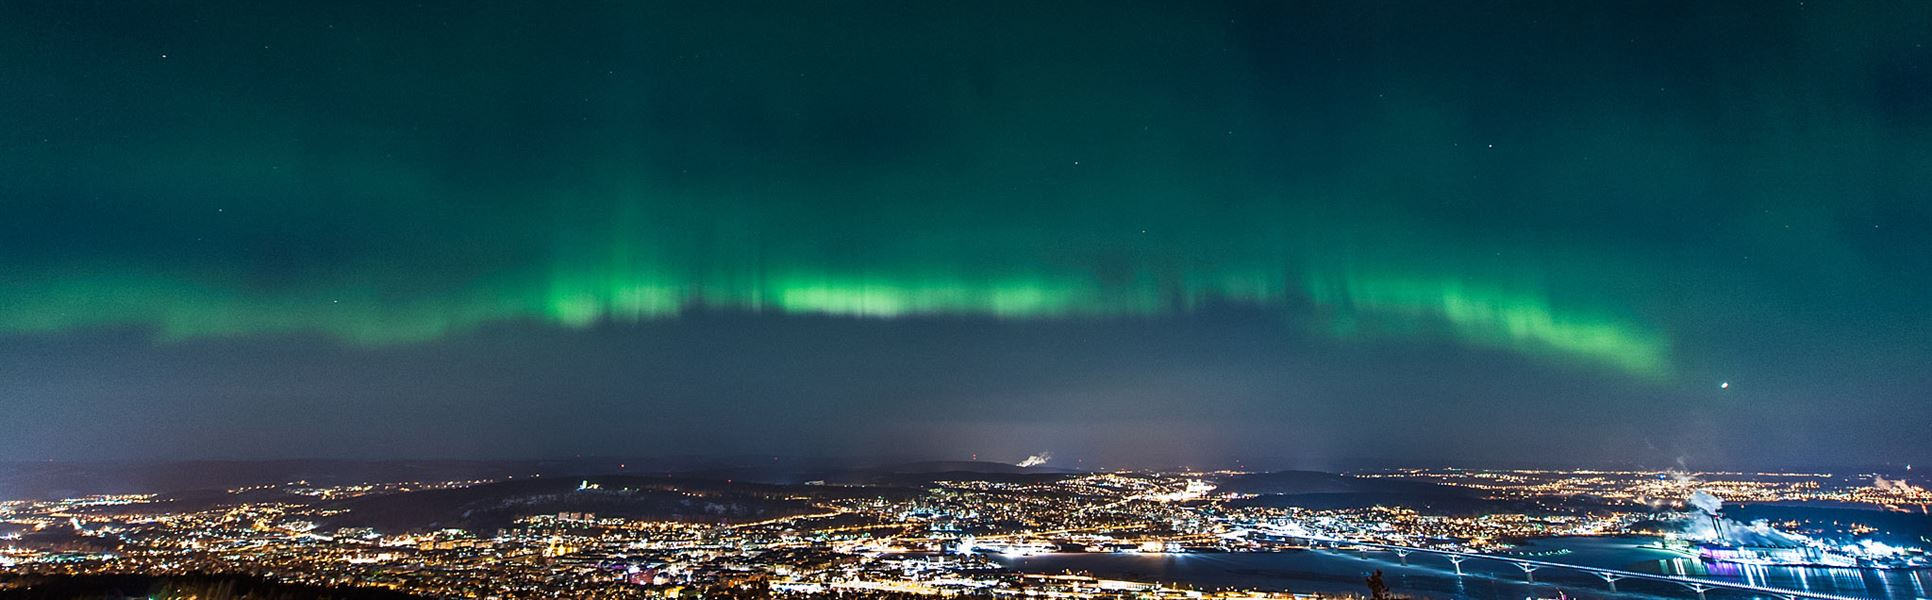 Northern lights over Sundsvall